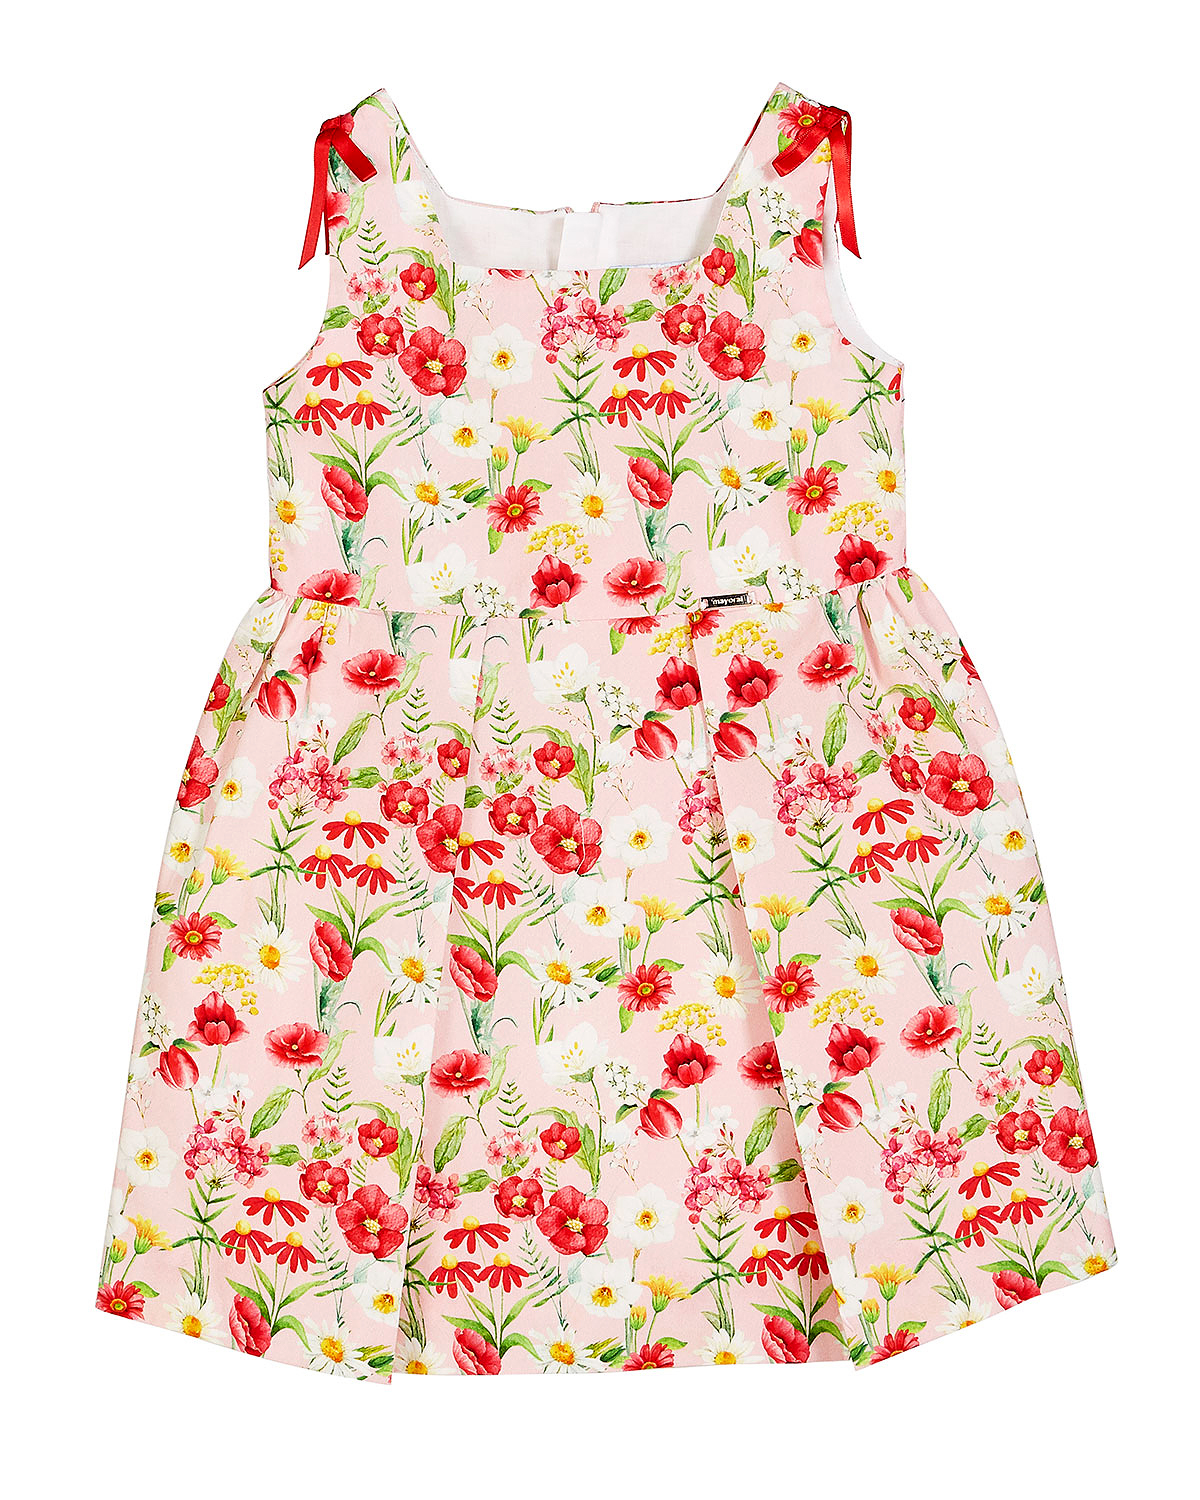 summer flower girl outfit floral patterned dress